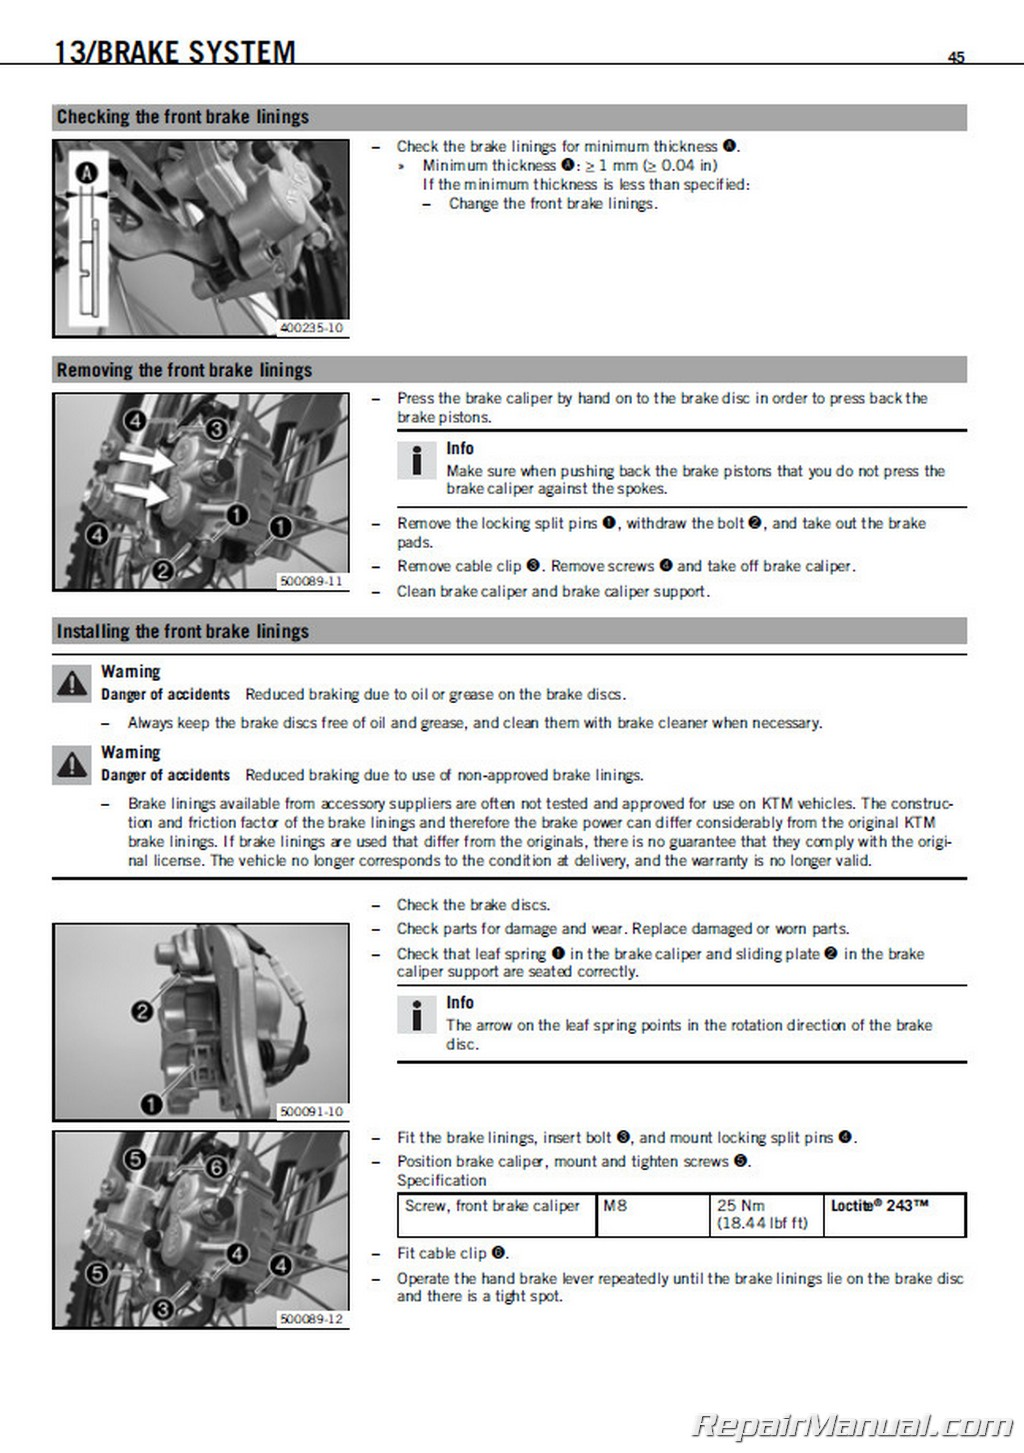 ktm 450 exc wiring diagram crayonbox single phase motor without capacitor 2008 530 r xcr w motorcycle repair manual